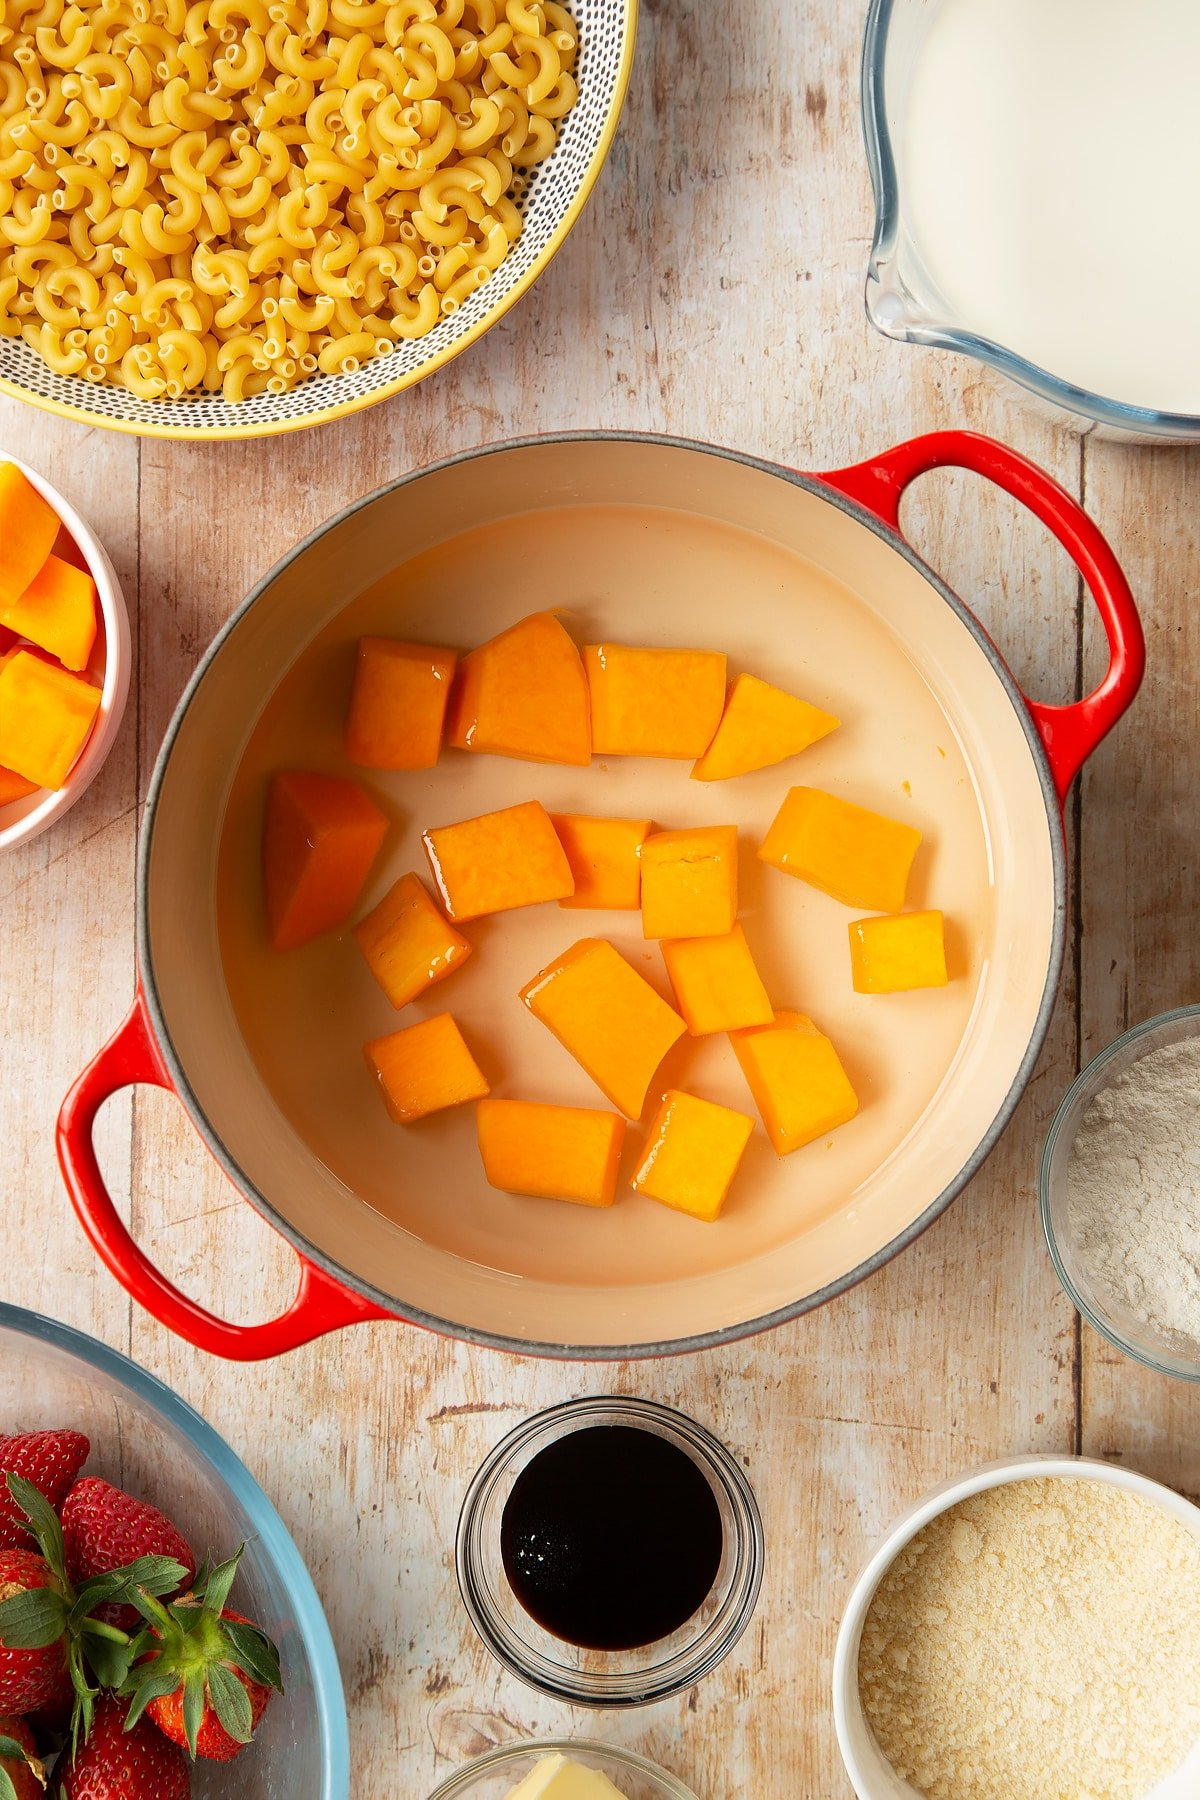 A saucepan containing chunks of butternut squash in water. The pan is surrounded by ingredients for strawberry pasta.